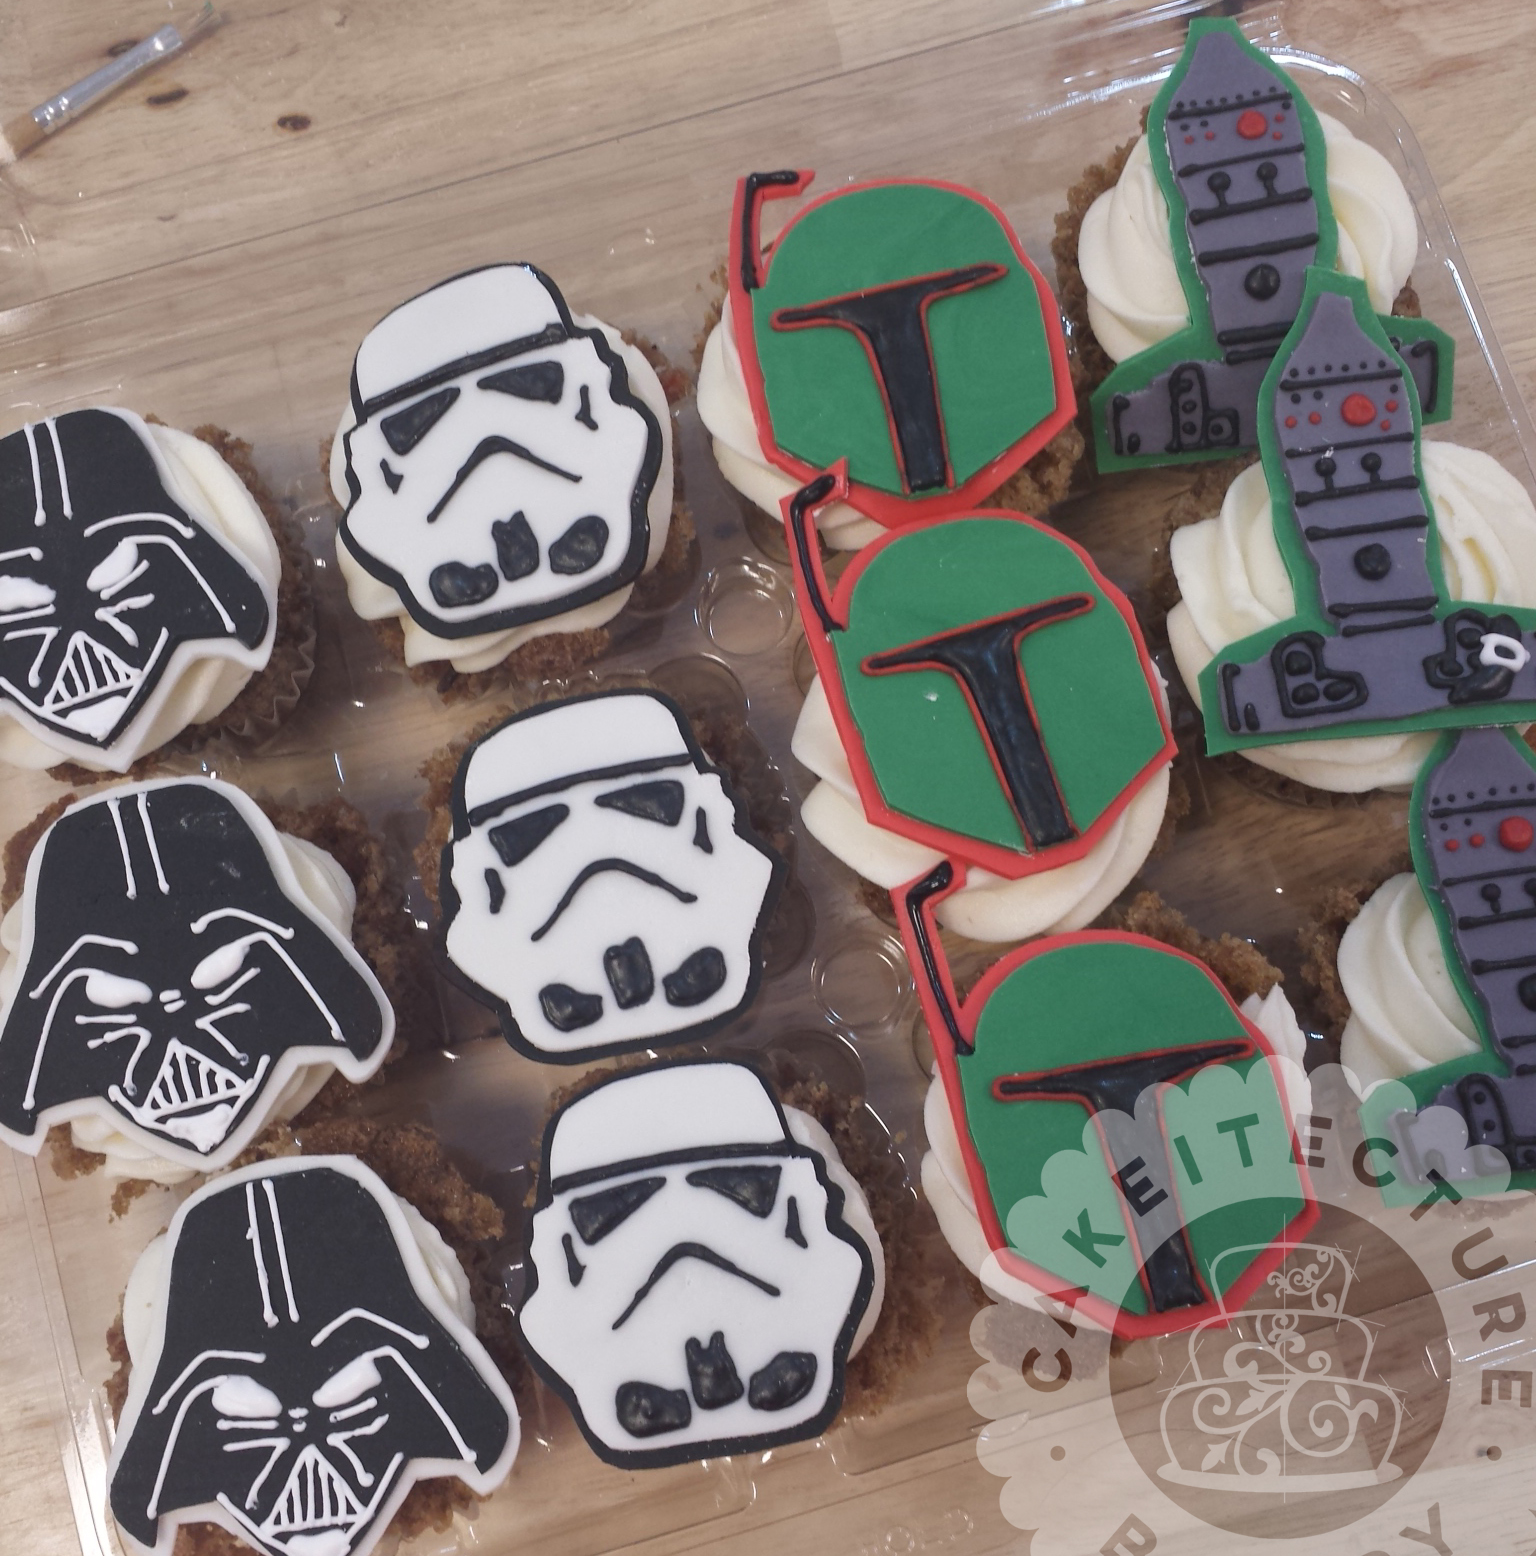 Cakeitecture Bakery star wars cupcakes.jpg